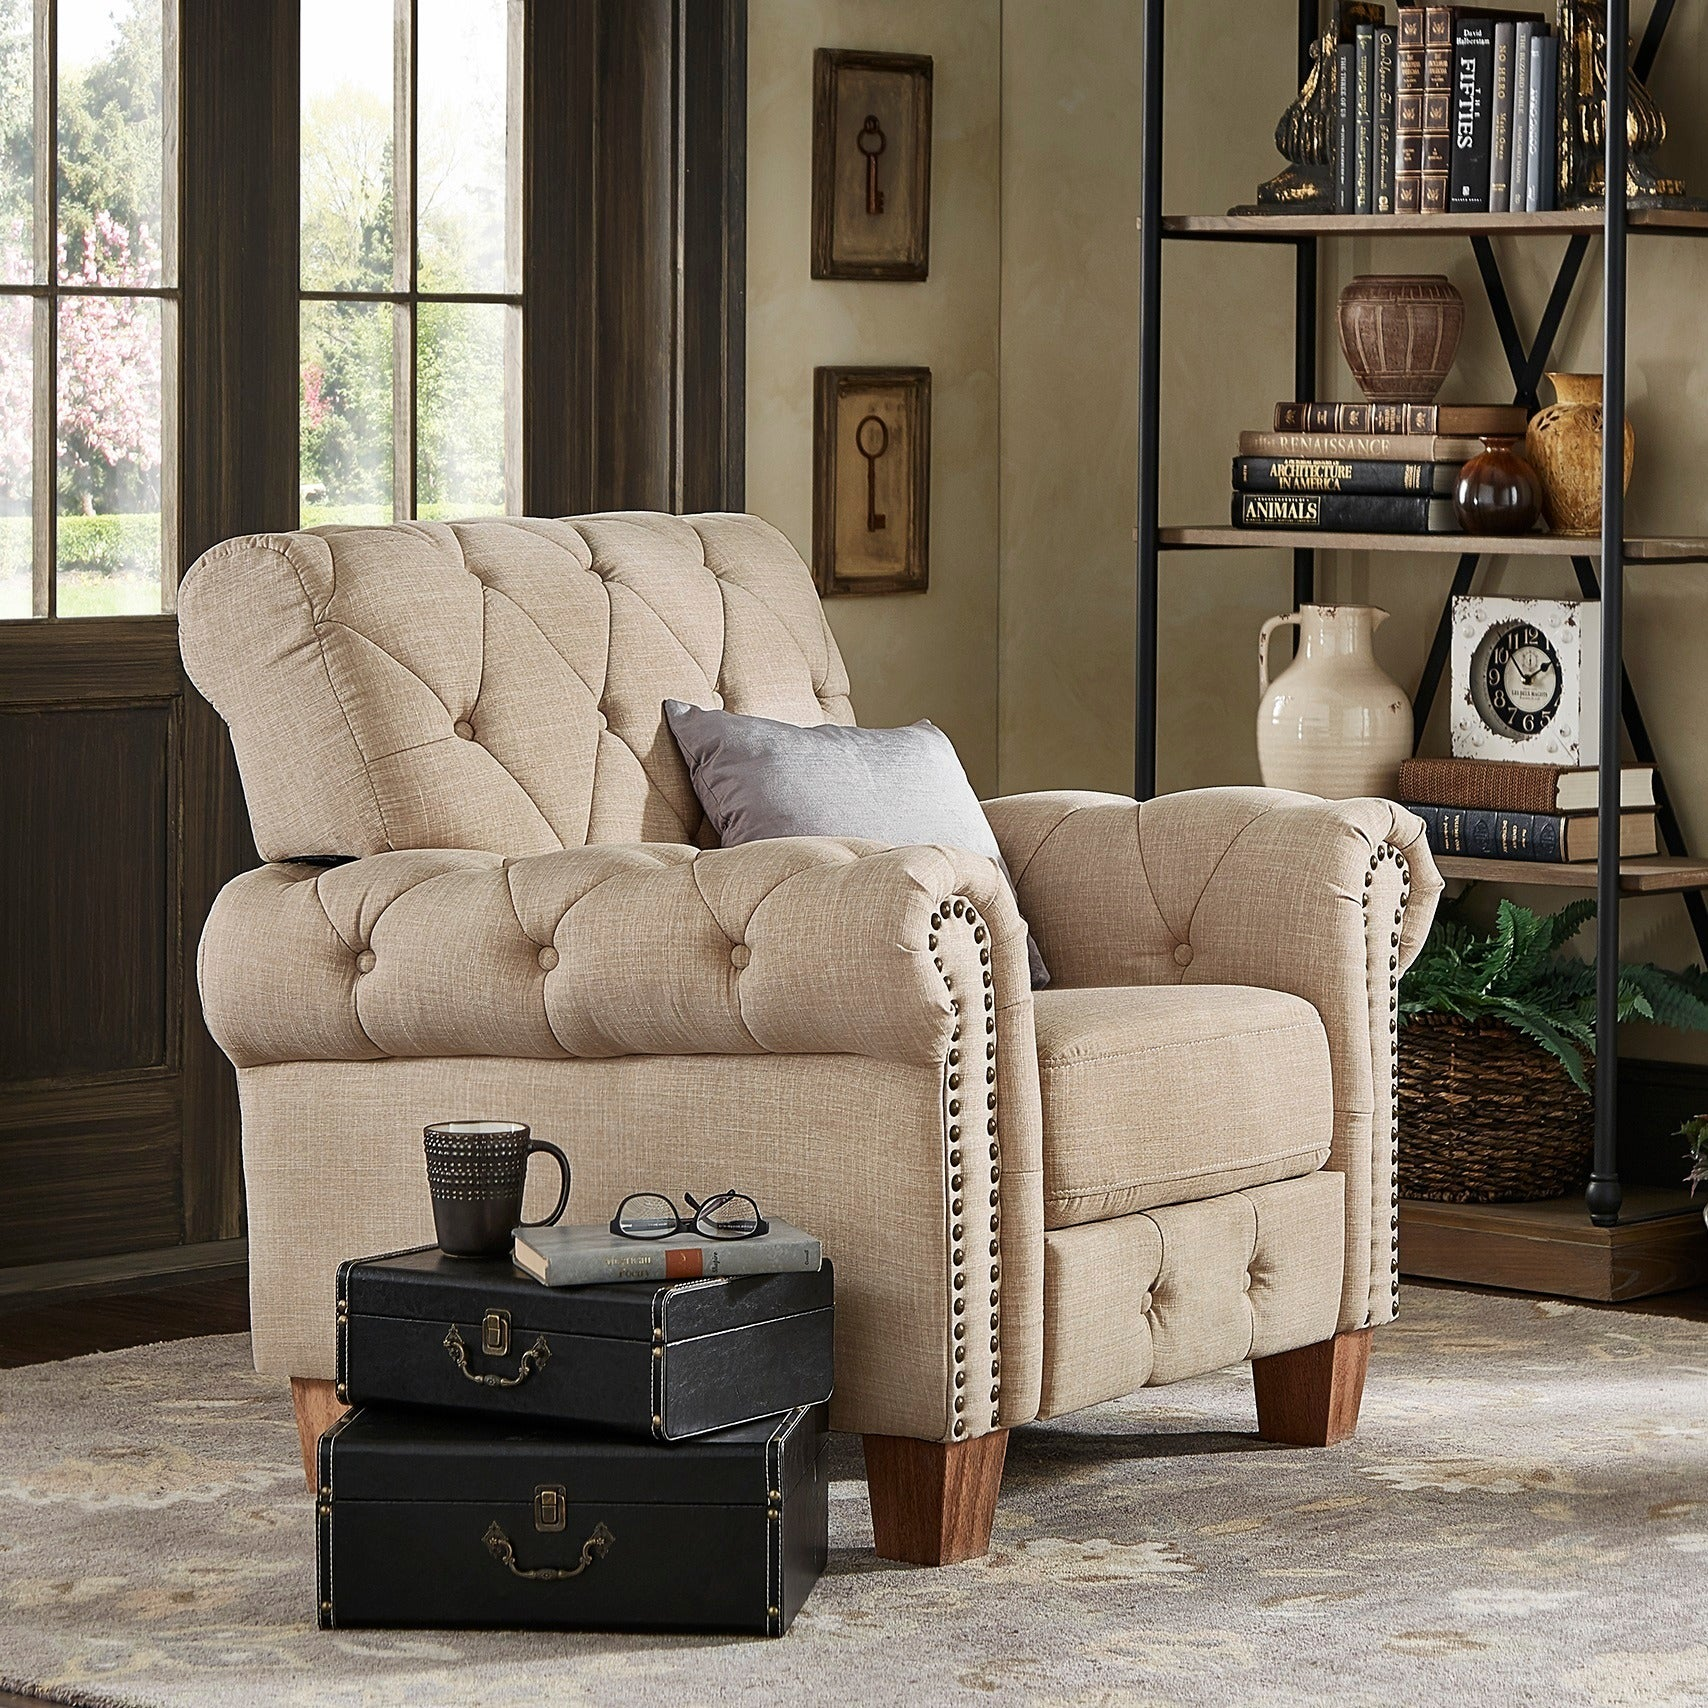 Shop Greenwich Tufted Beige Linen Chesterfield Recliner by iNSPIRE Q